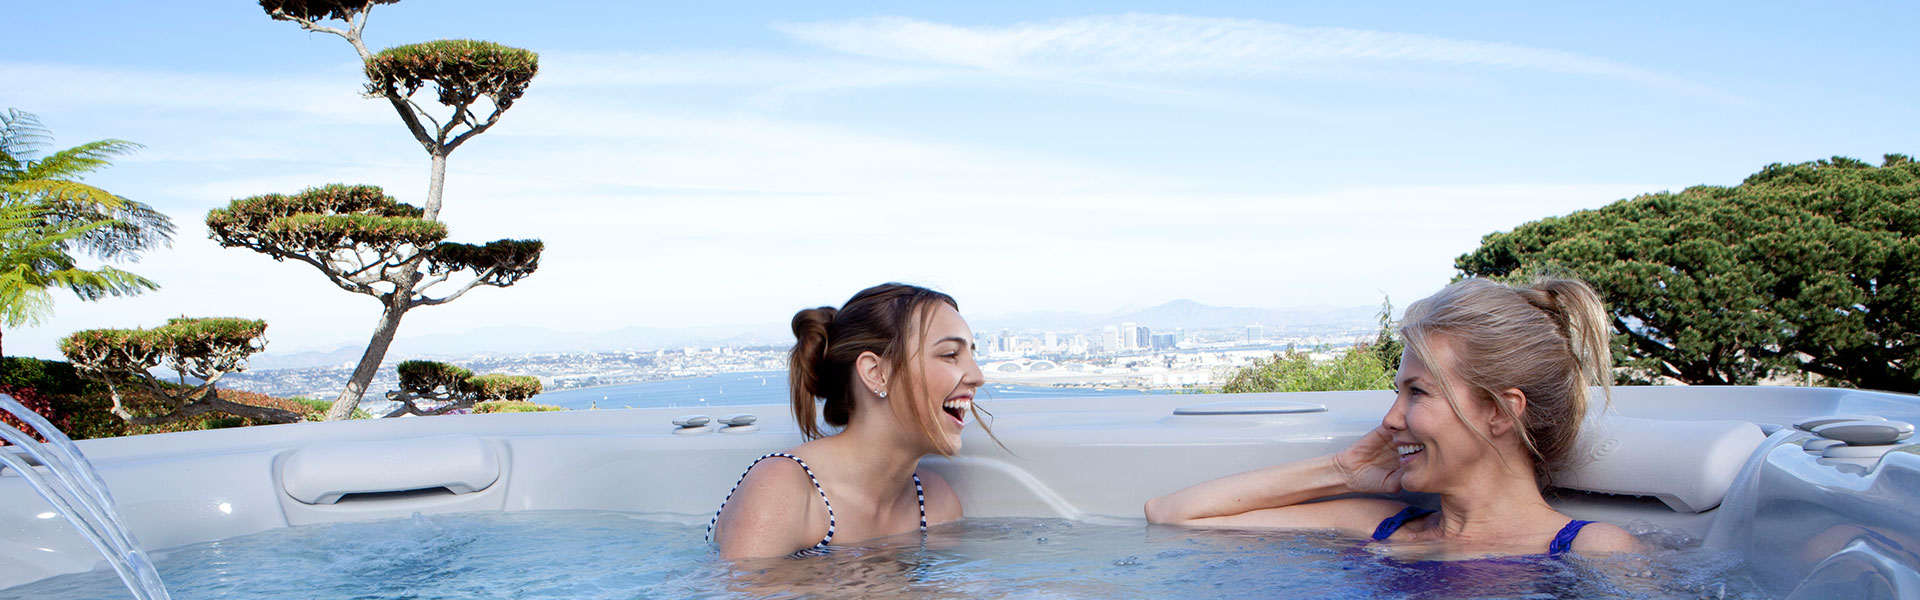 Spa Accessories Aspot Women Smiling Hot Tub City View